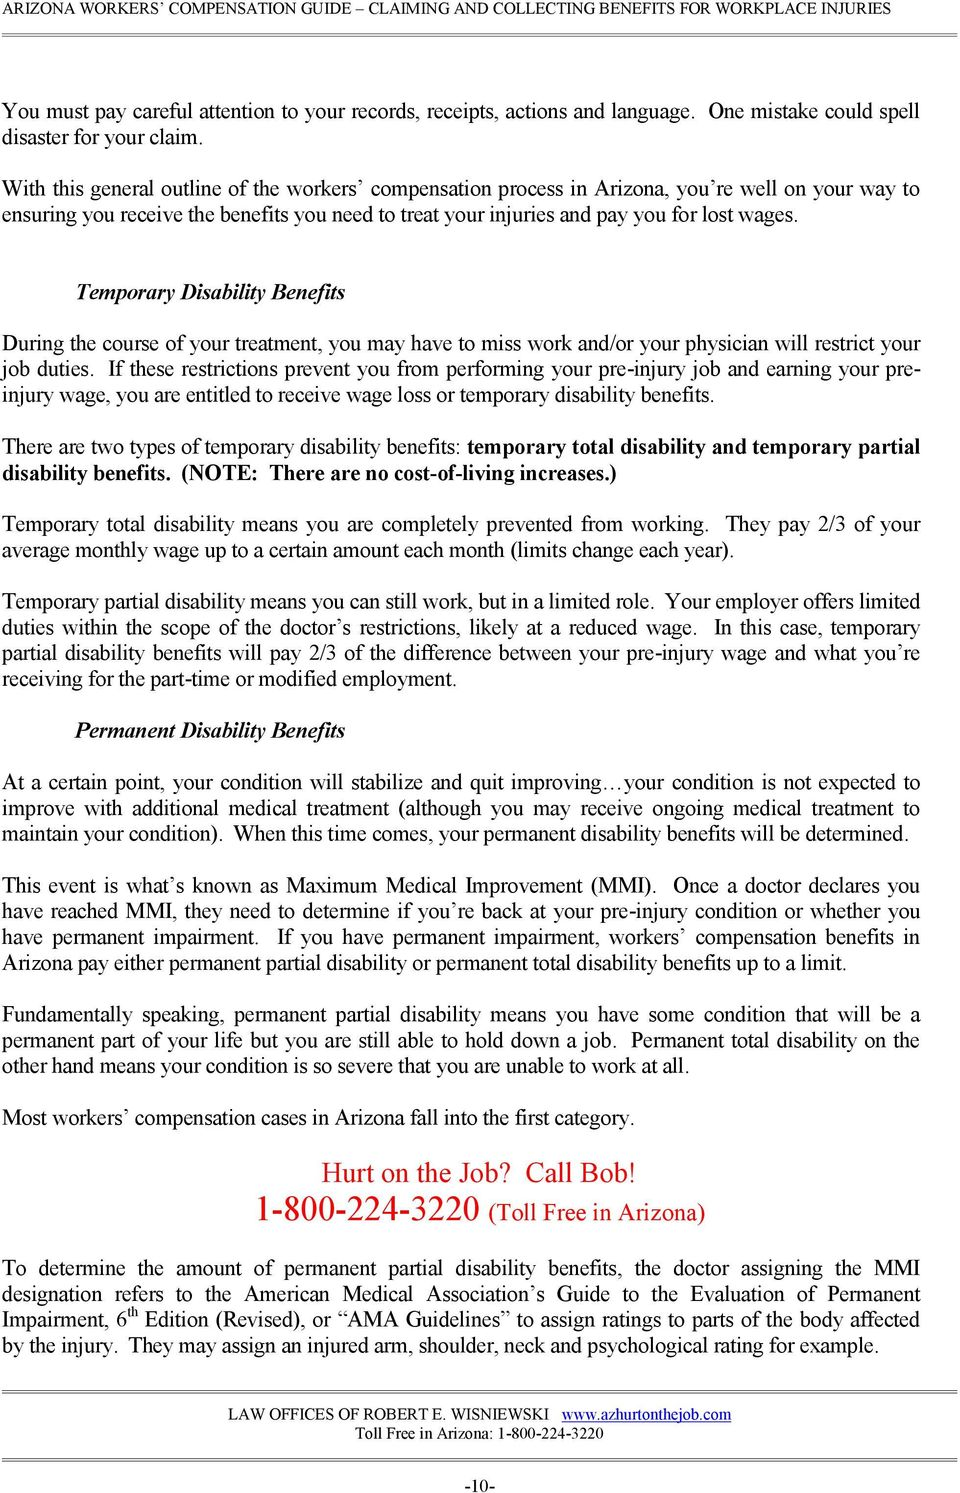 Temporary Disability Benefits During the course of your treatment, you may have to miss work and/or your physician will restrict your job duties.